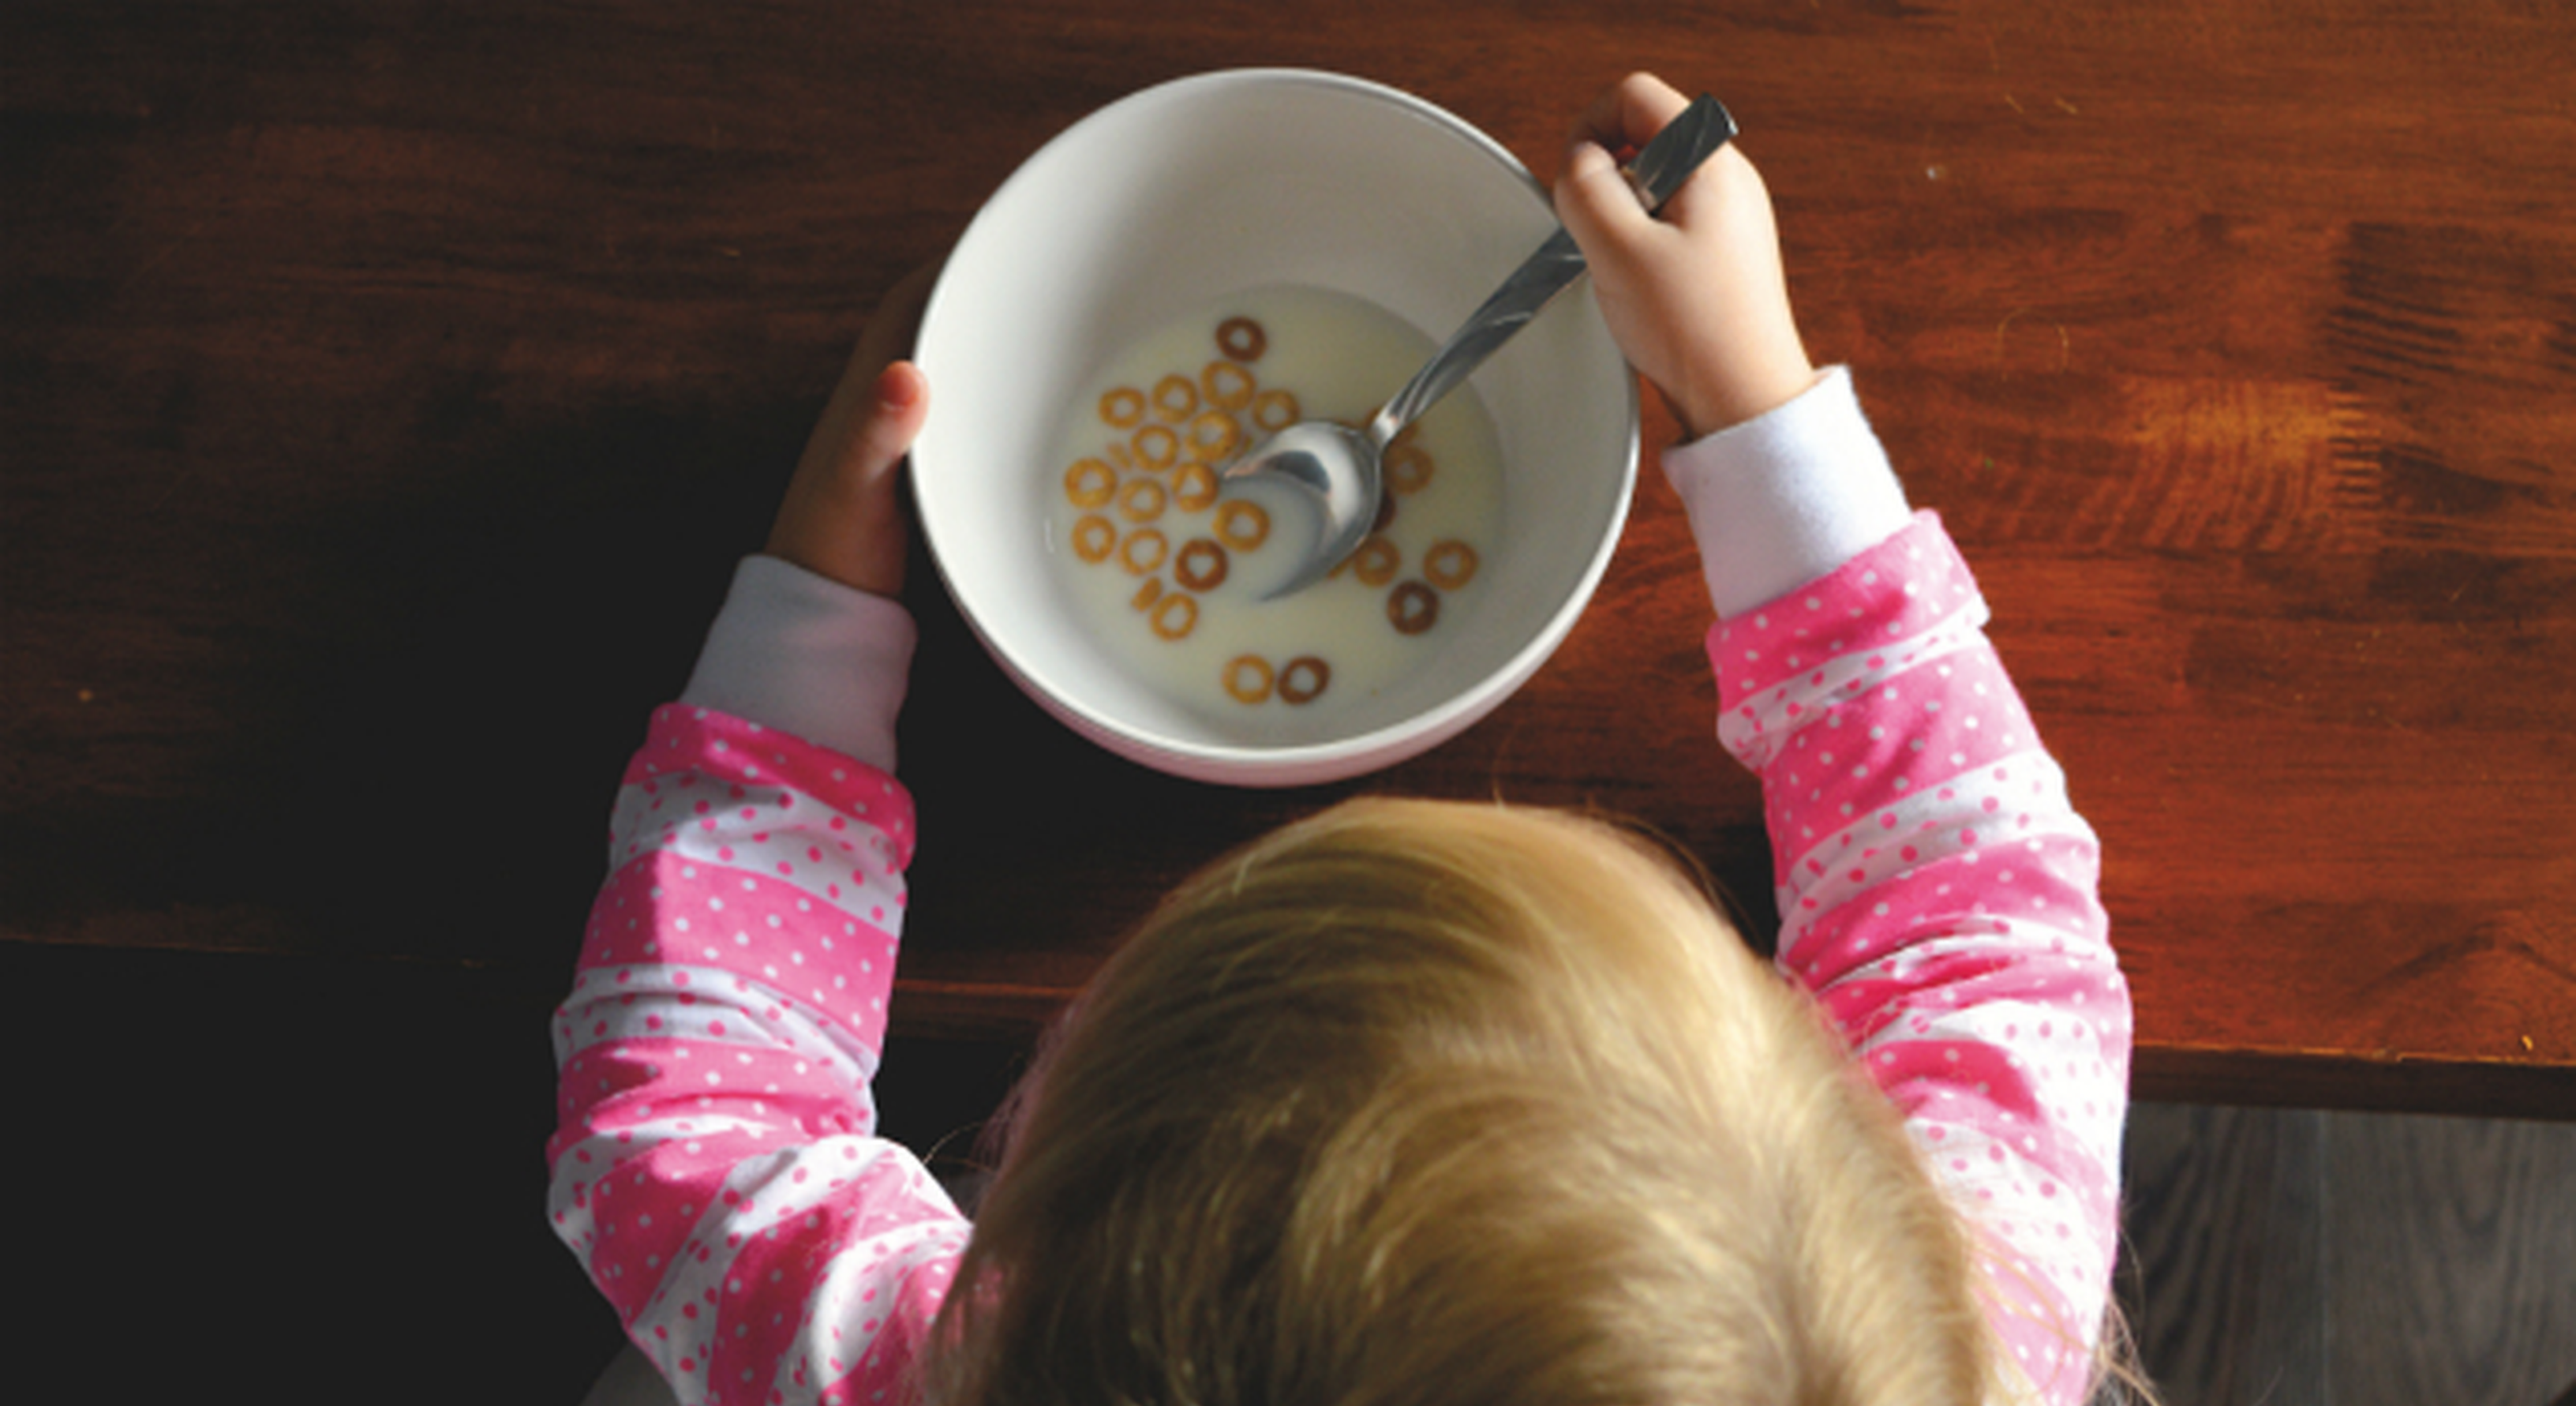 Little girl eating bowl of Cheerios and milk